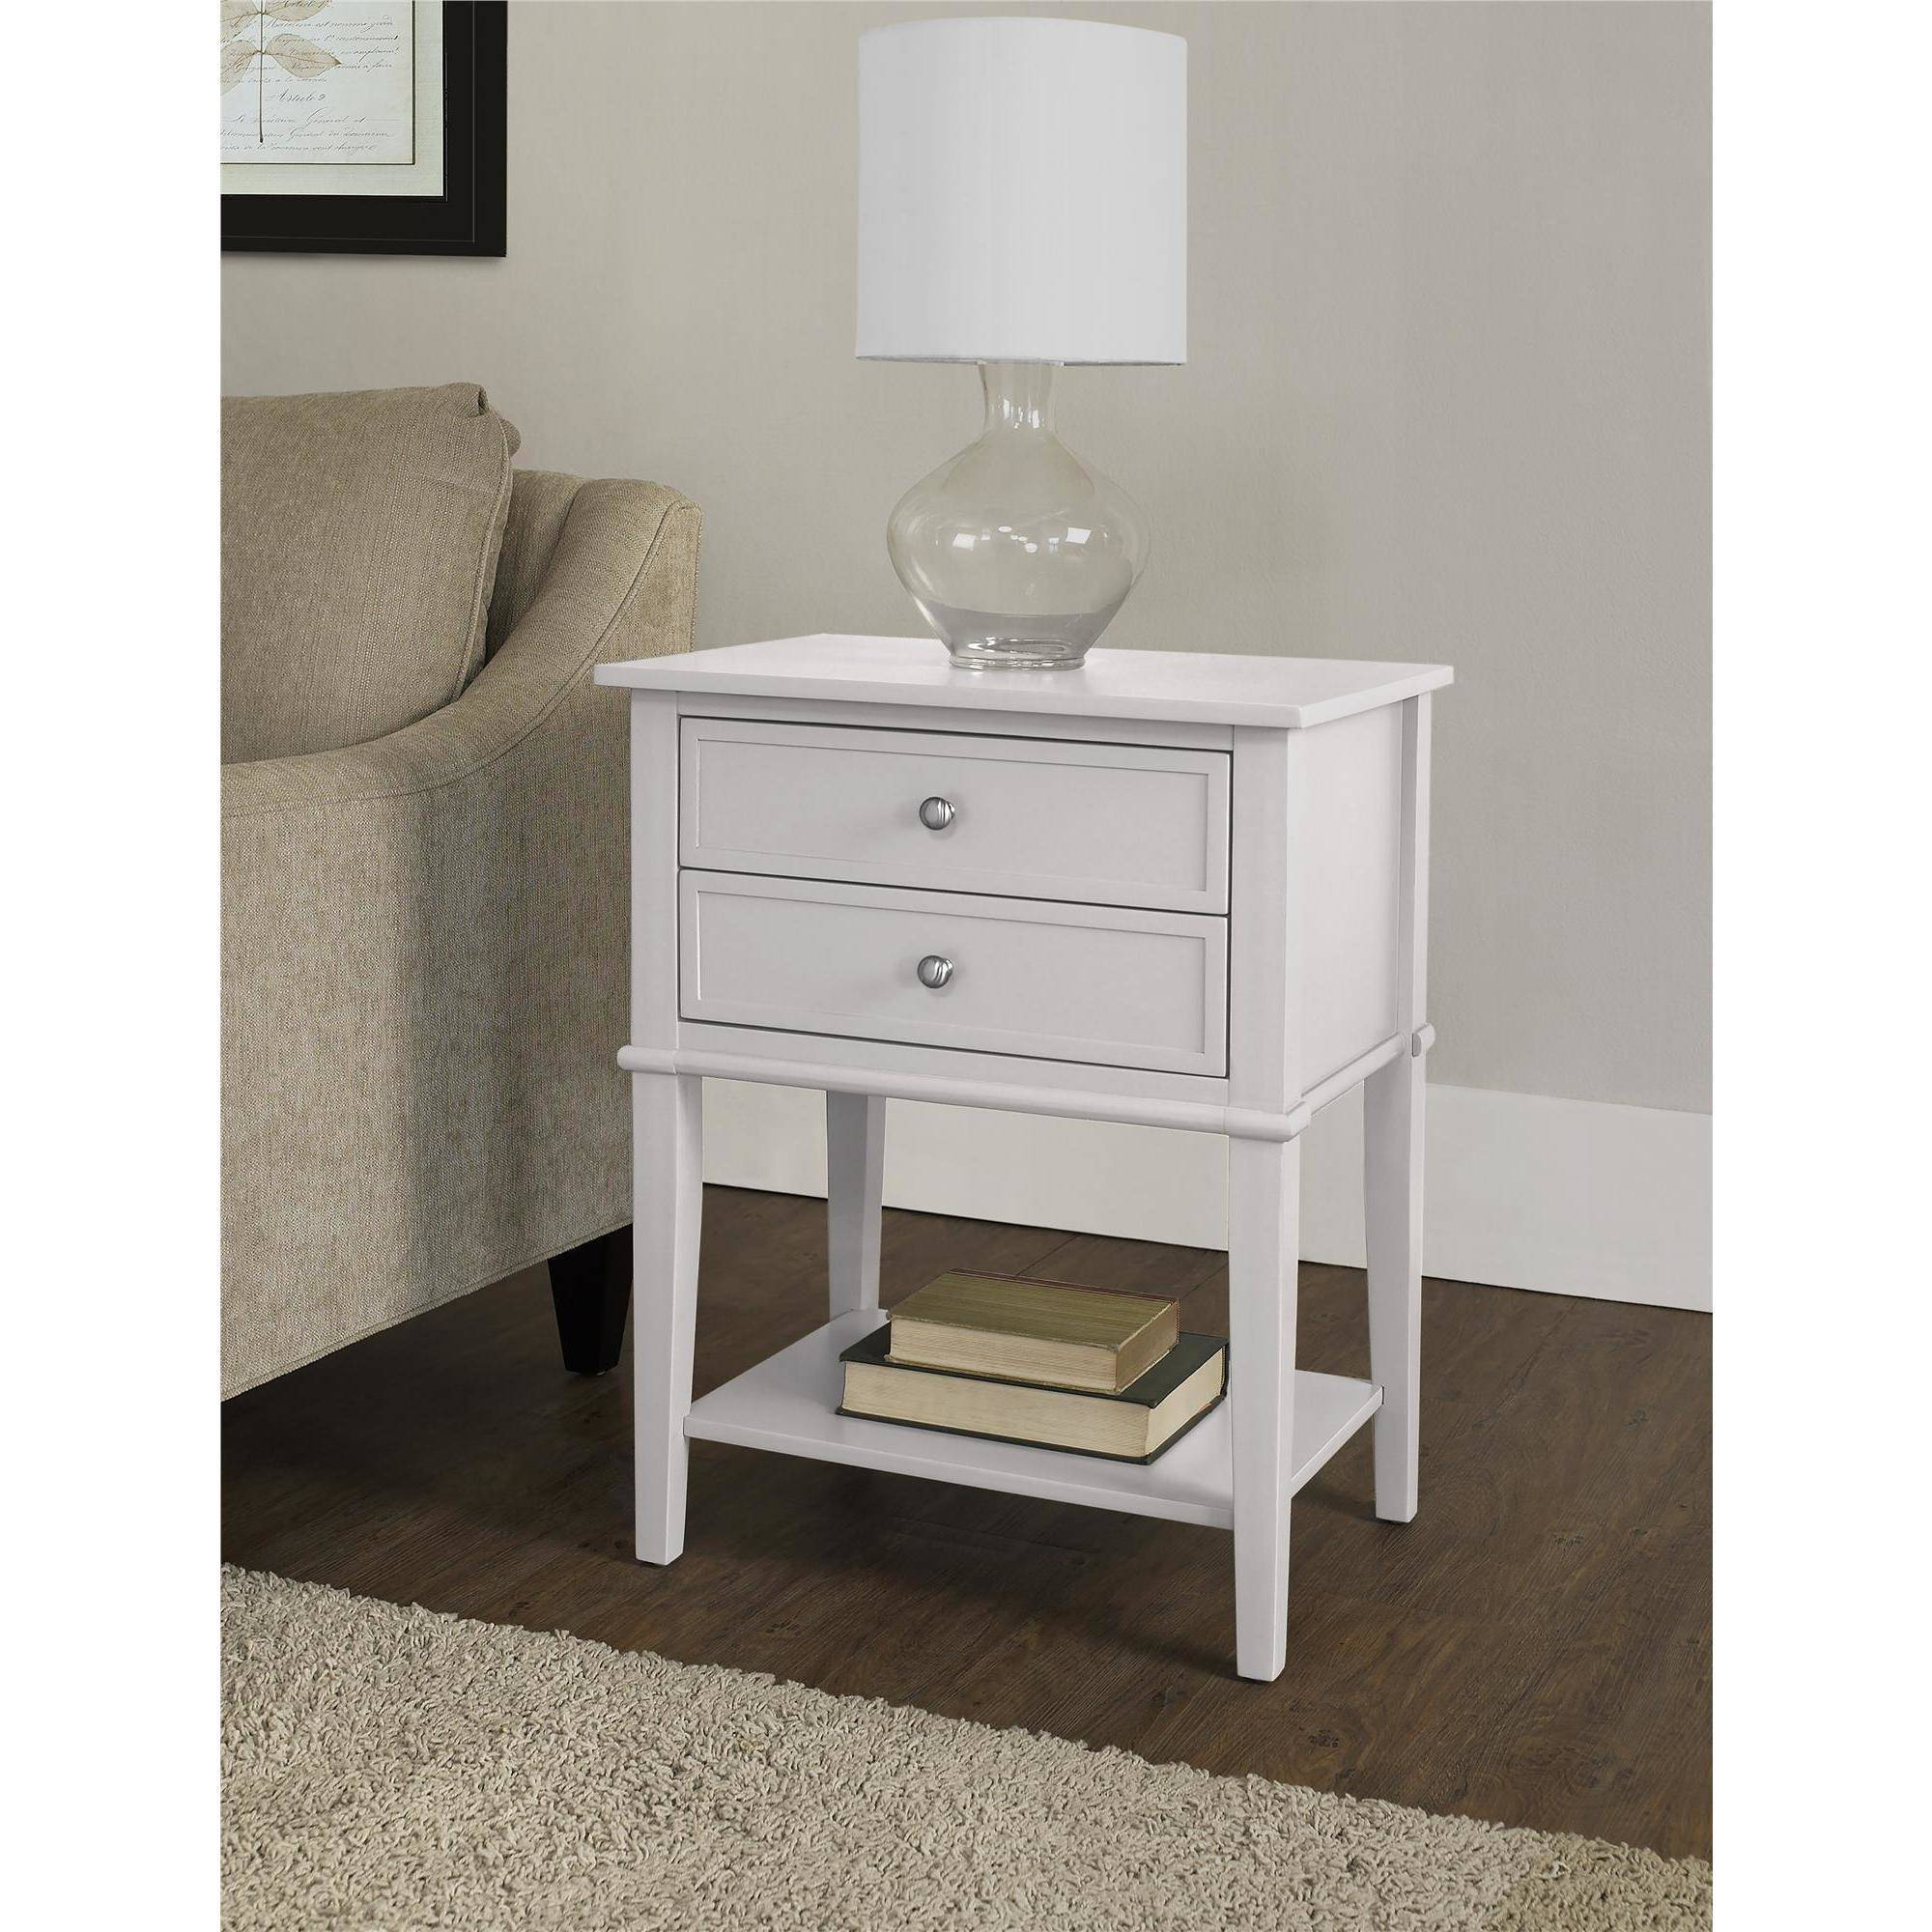 altra franklin accent table with drawers white end drawer stock furniture multiple colors ture bathroom makeup vanity small metal royal sofa set hidden storage round dining wood